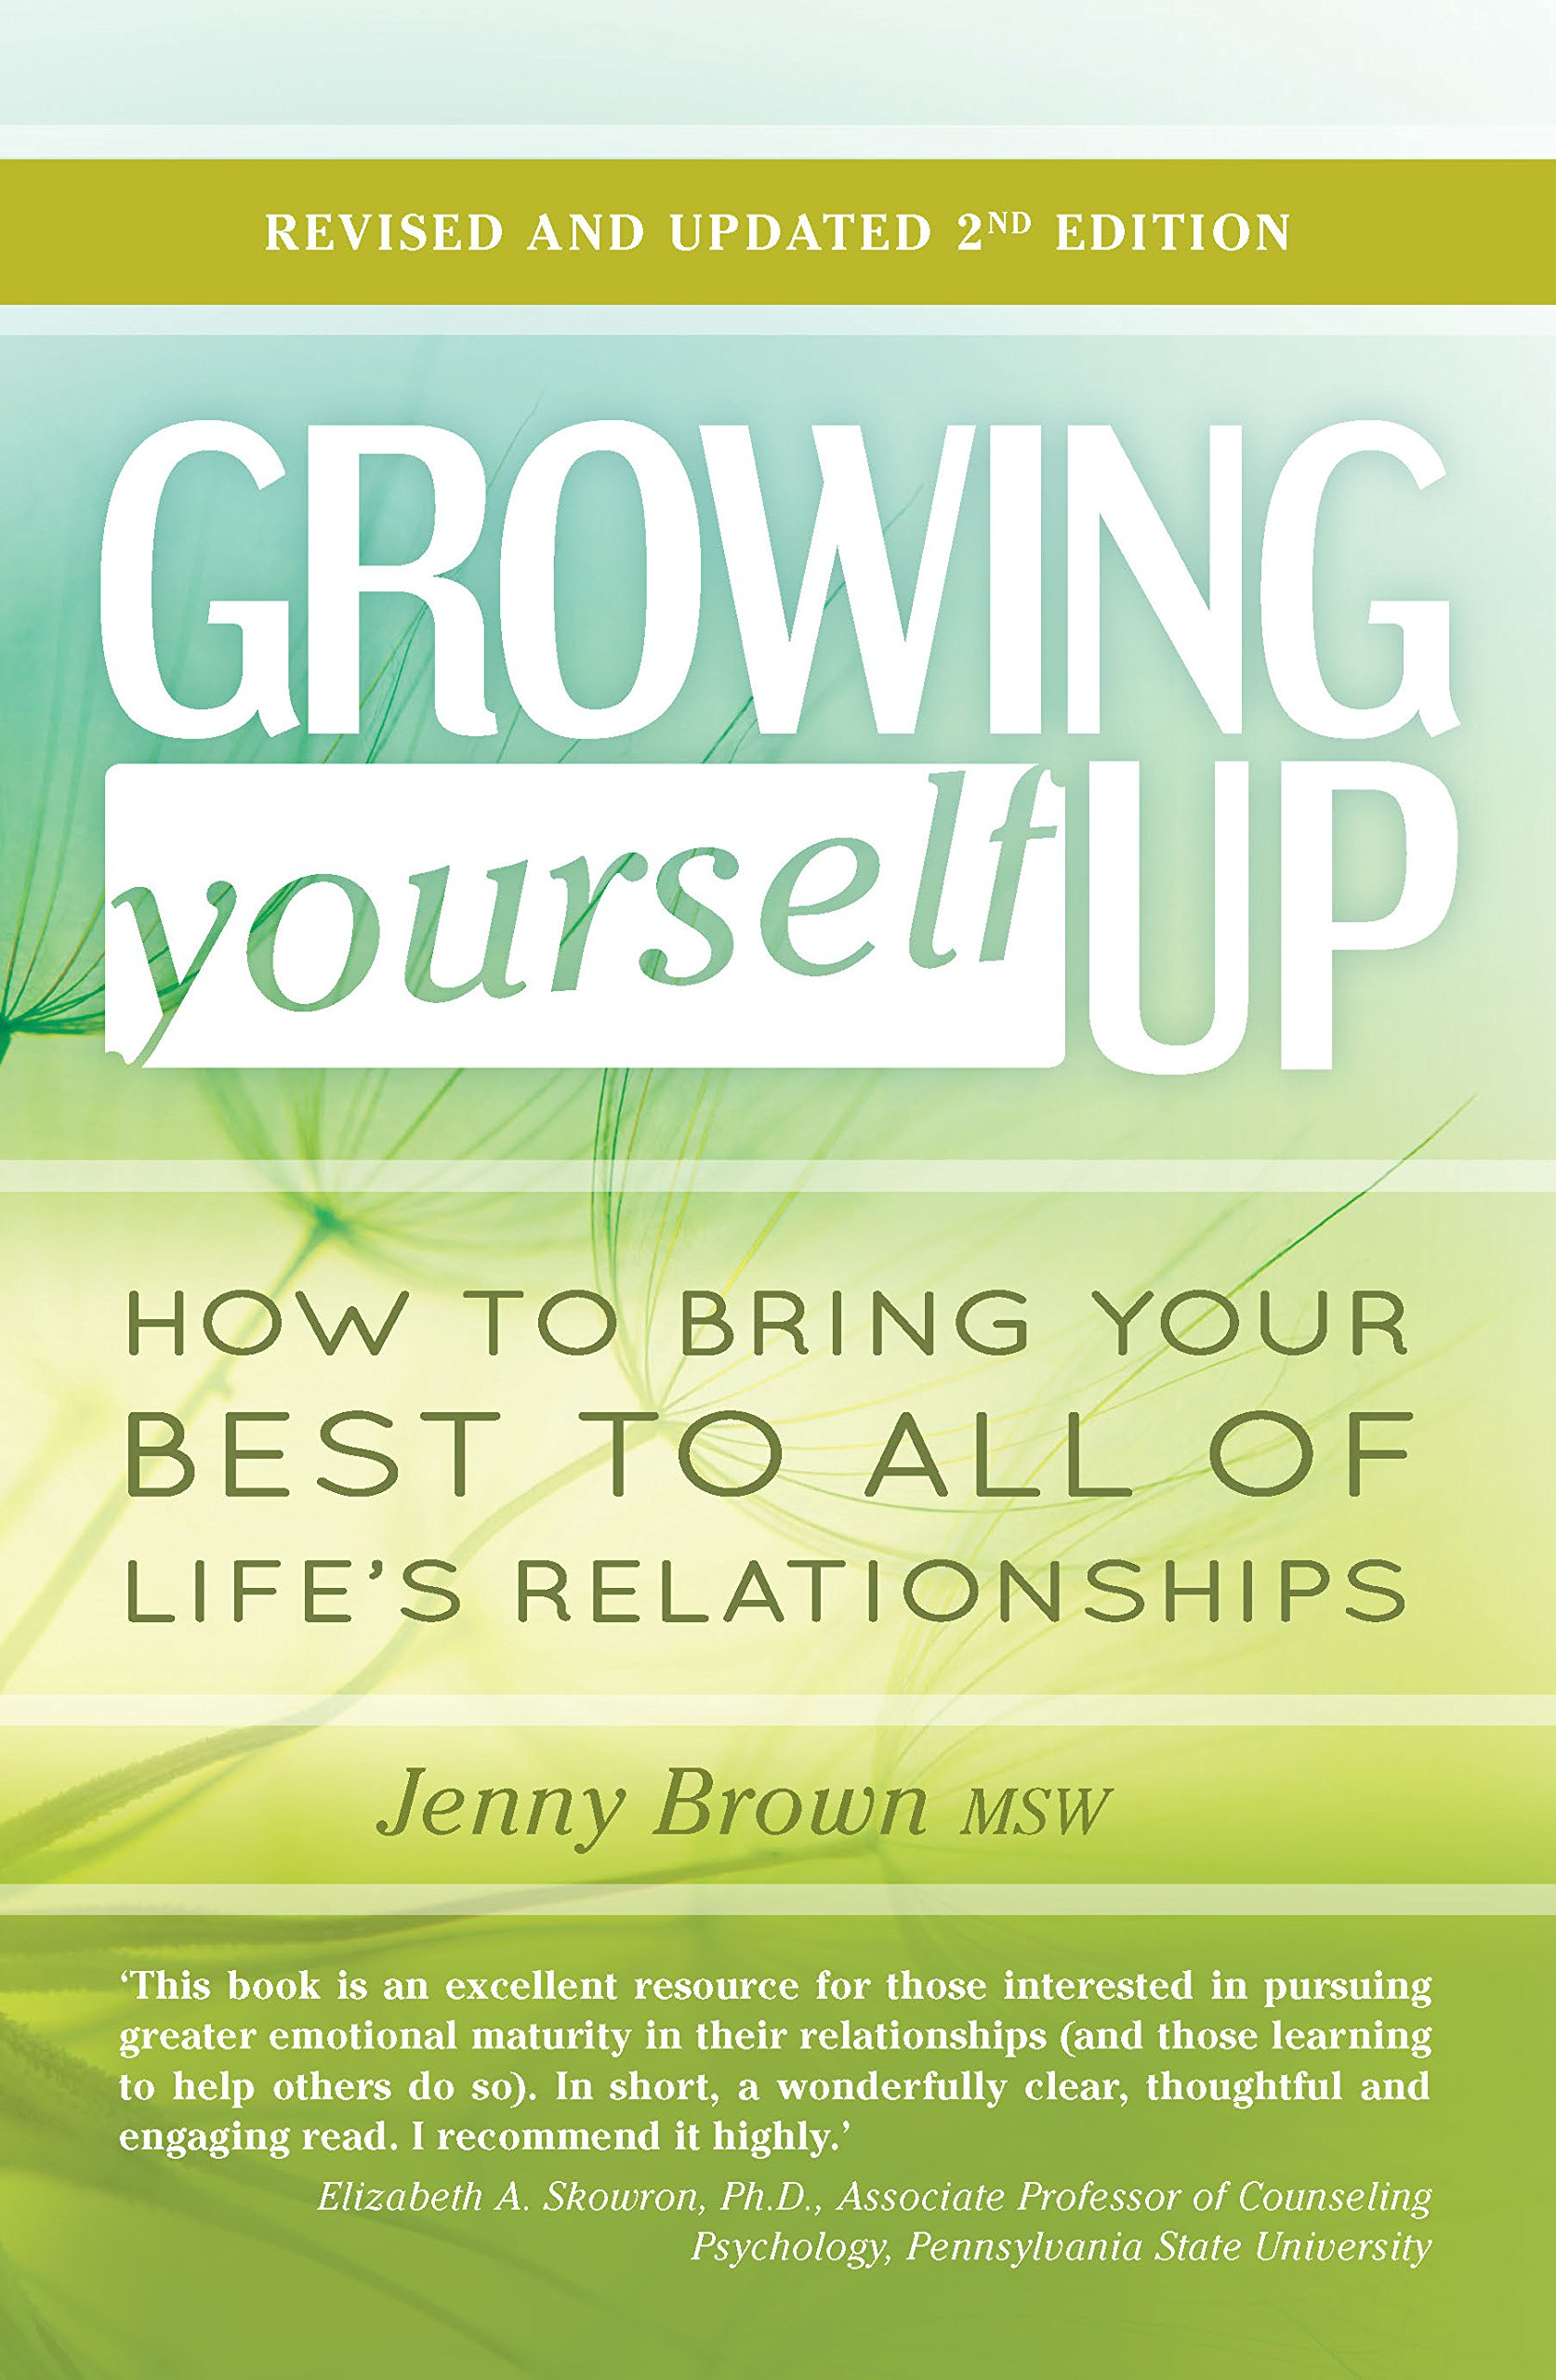 Growing Yourself Up: How to bring your best to all of life's relationships